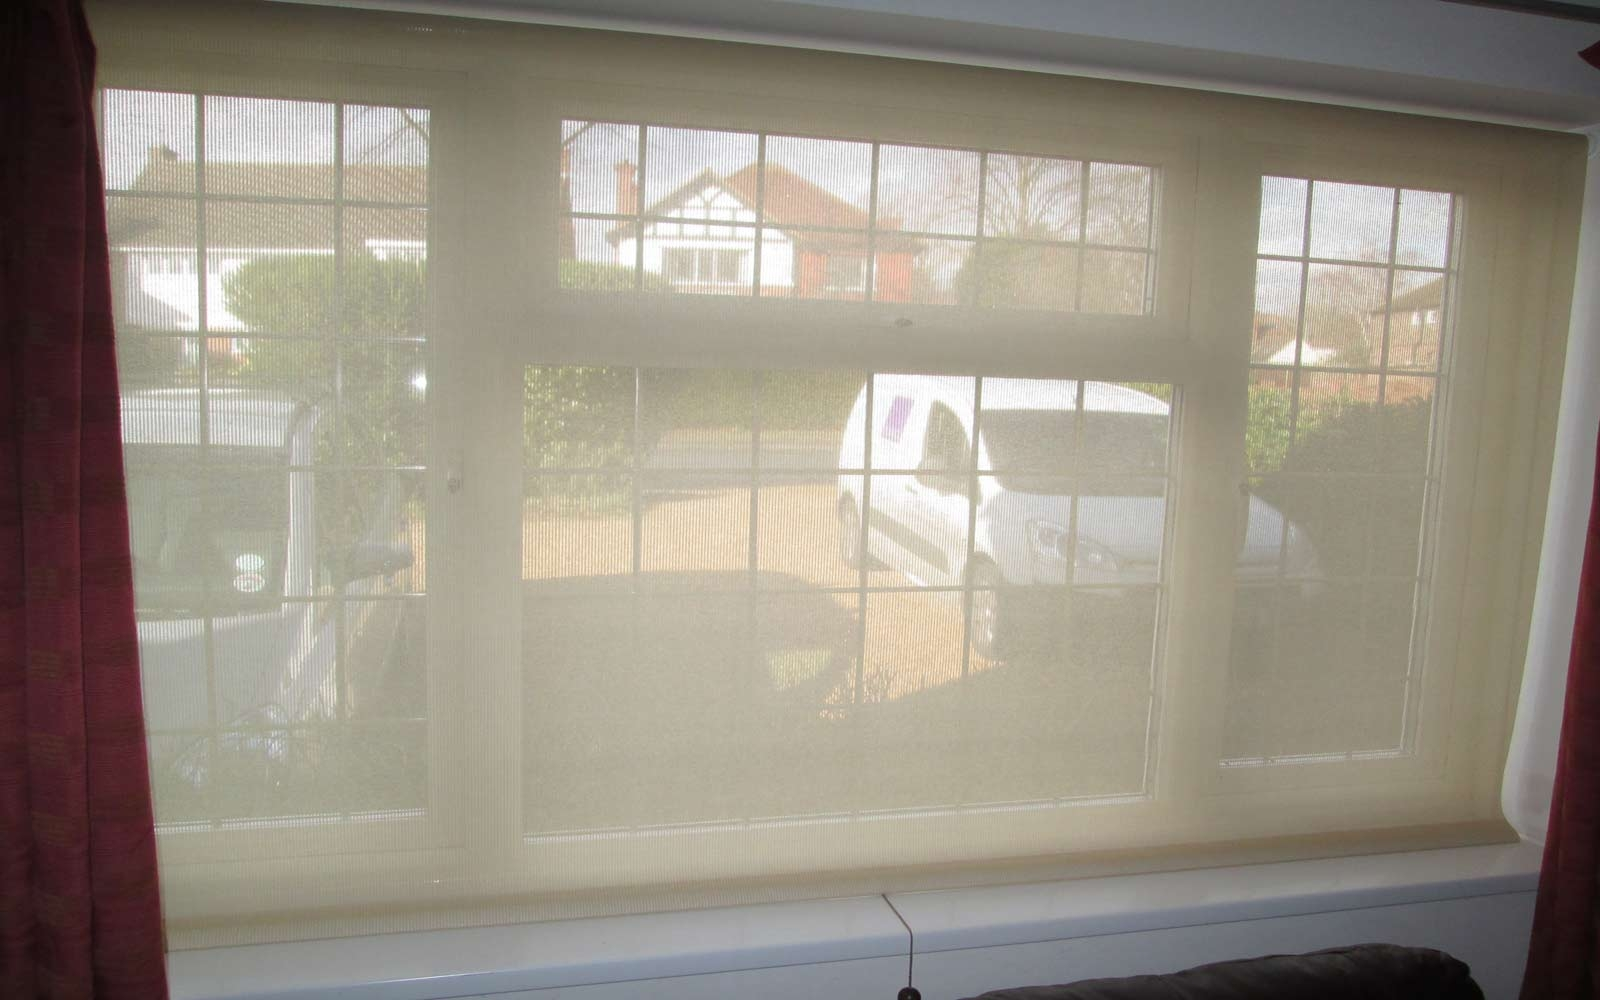 Voile Roller Blind Surrey Blinds Shutters Intended For Voile Roman Blinds (View 6 of 15)